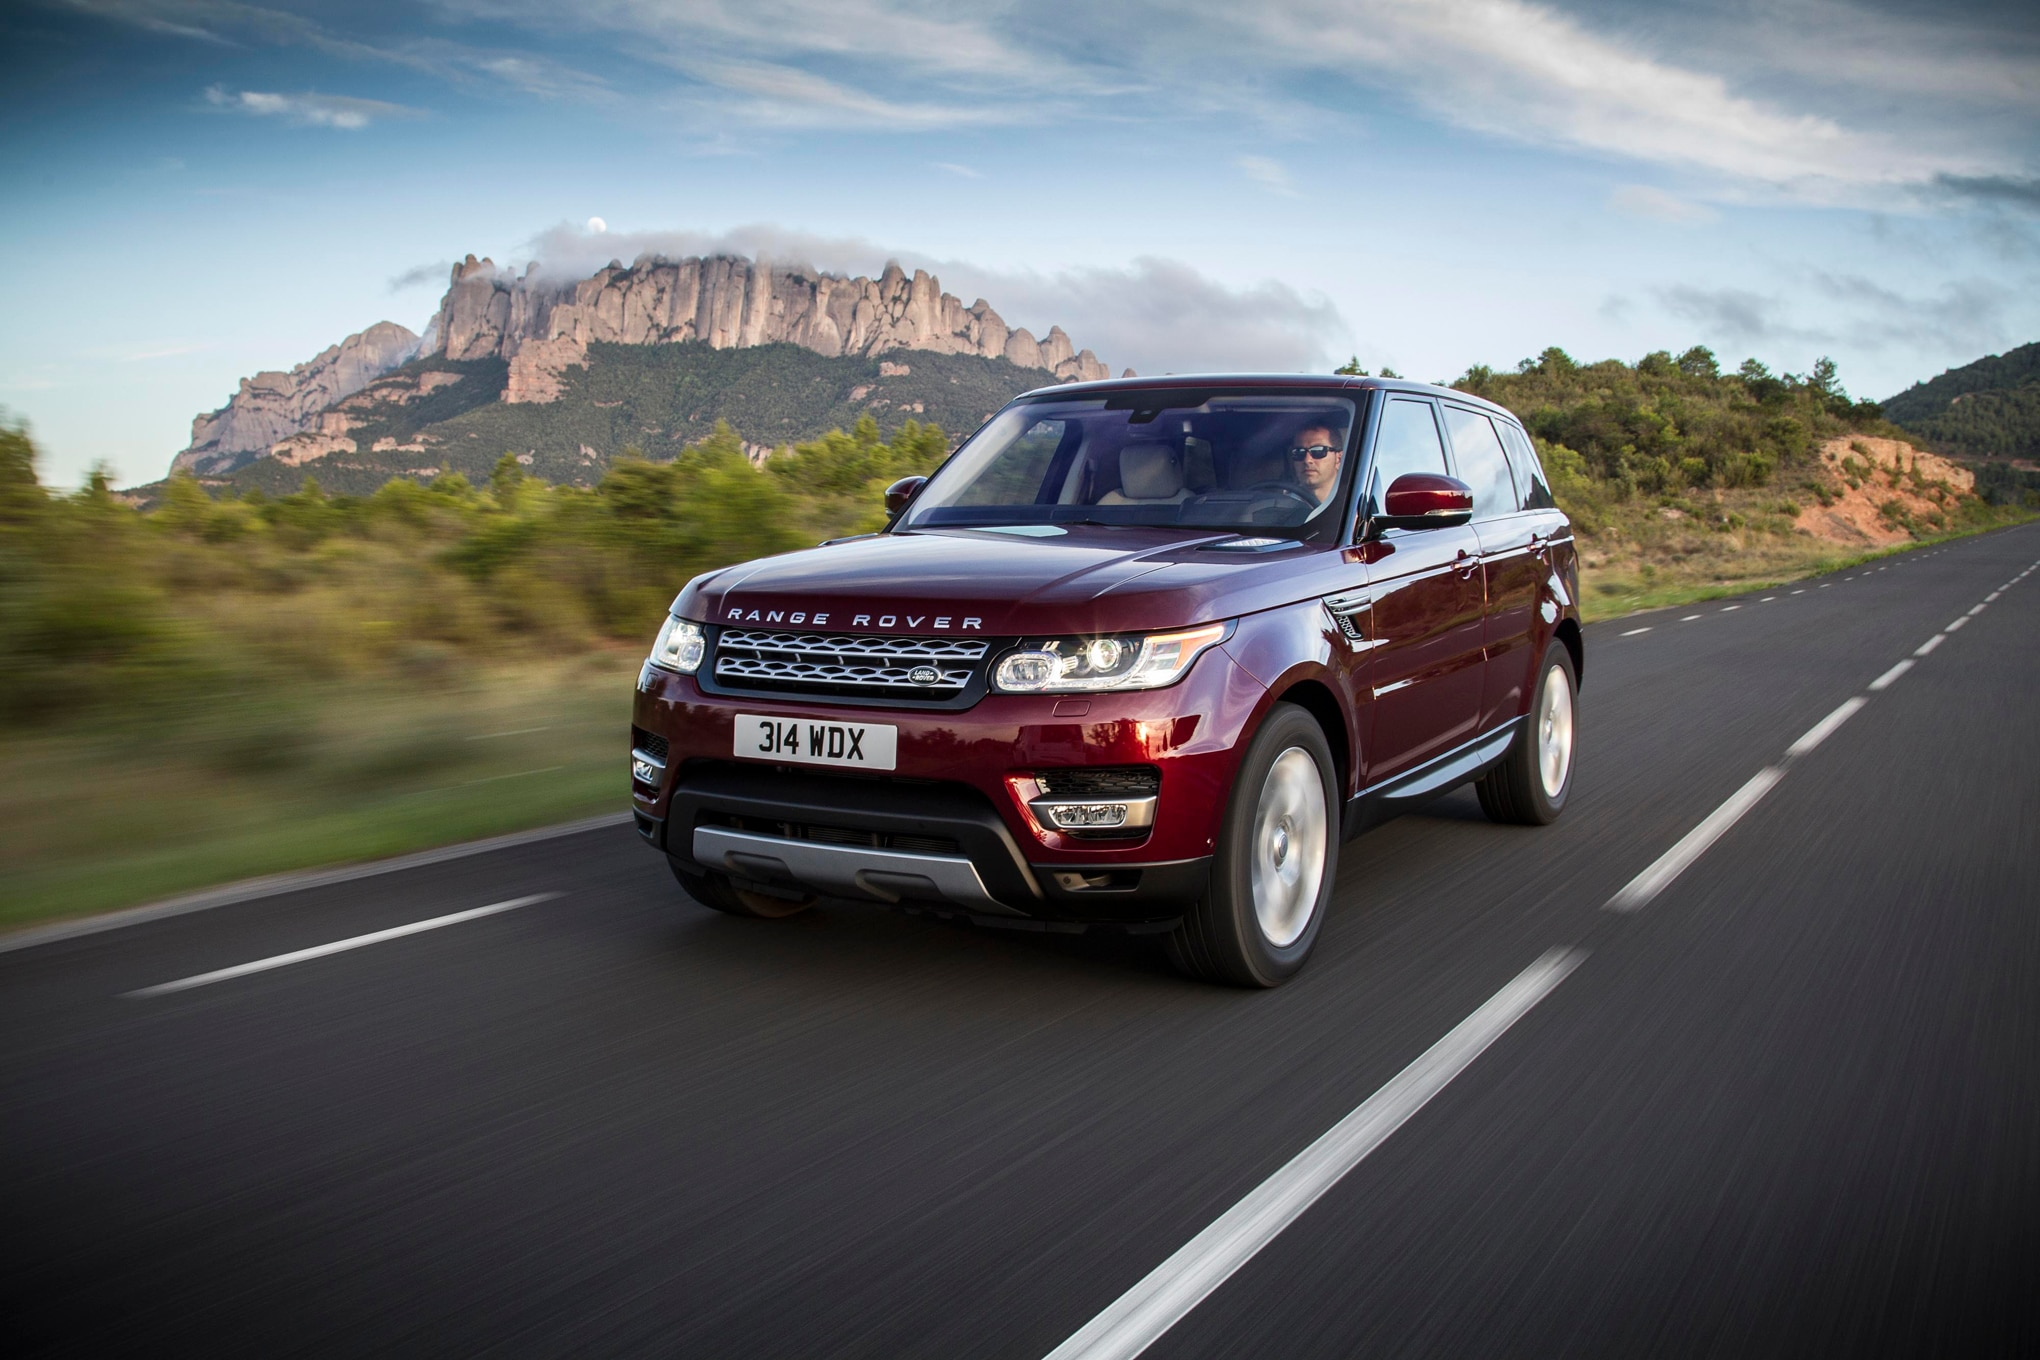 2016 Land Rover Range Rover Sport Td6 Review